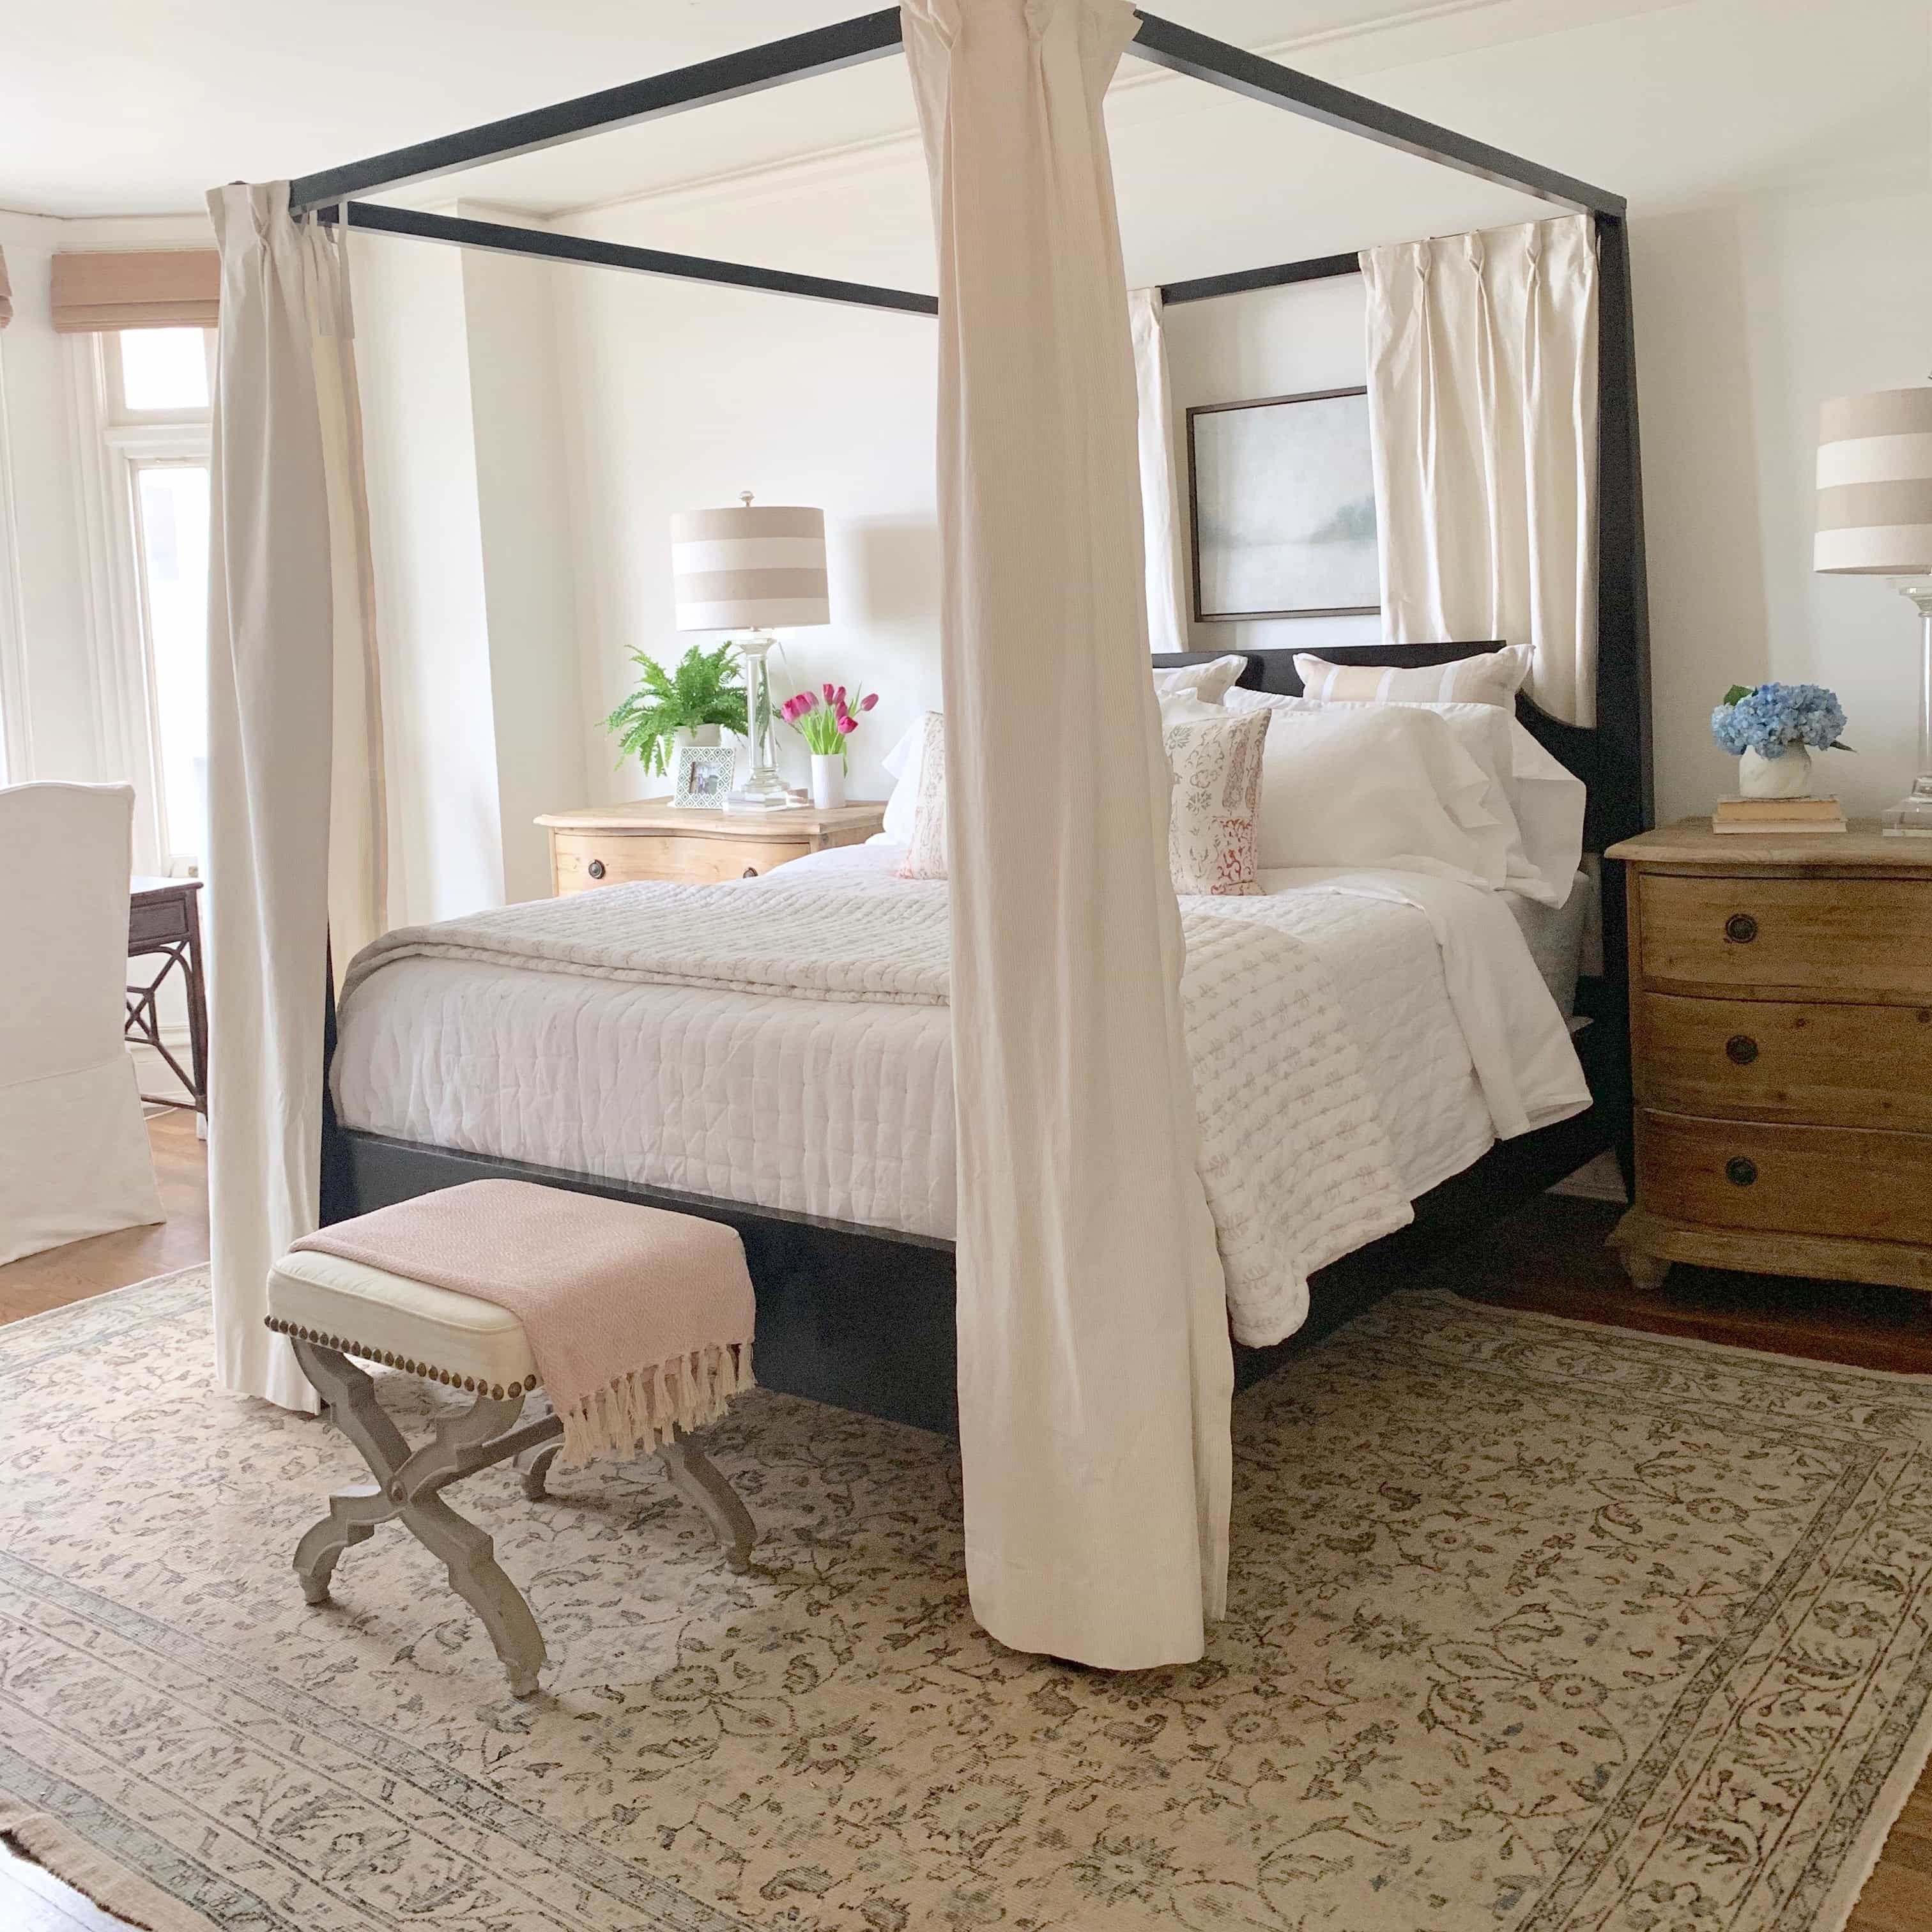 Home Tour: Classic Casual Home | Luxurious bedrooms ...